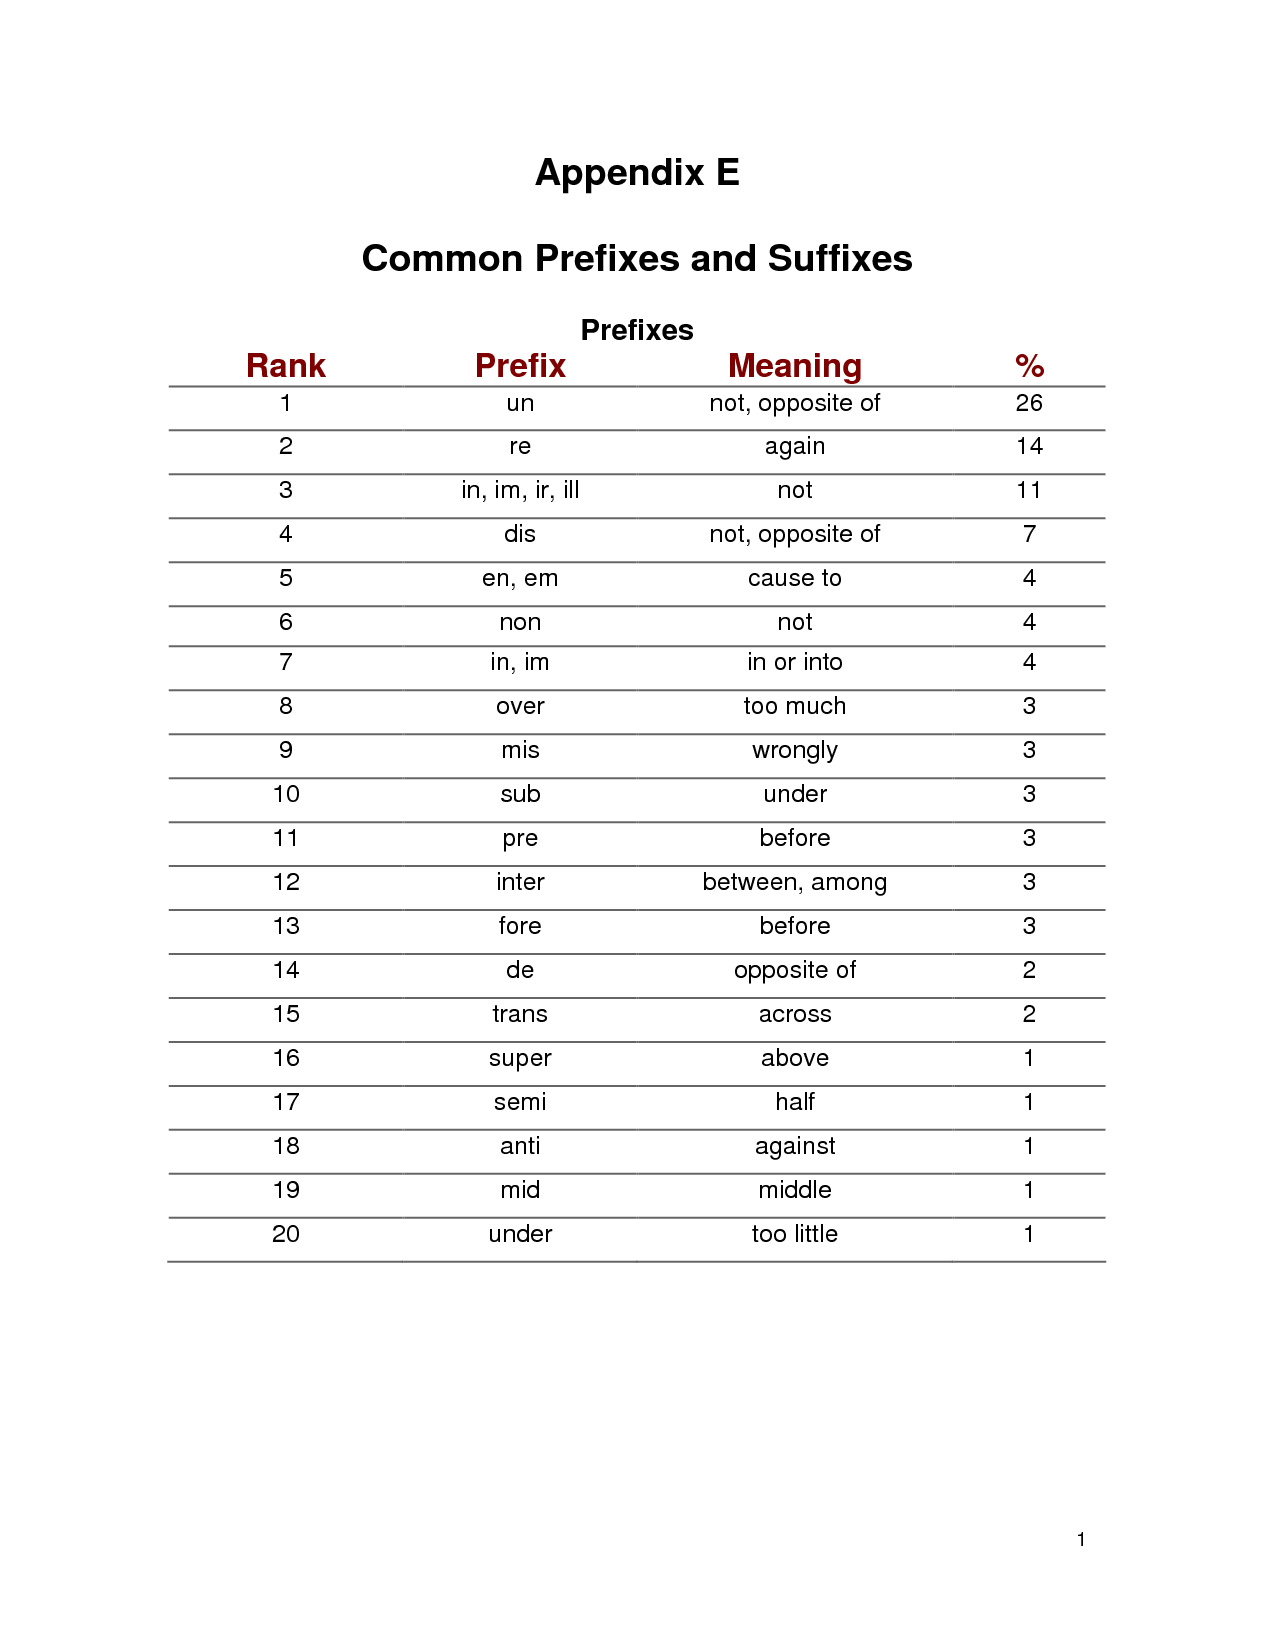 17 Best Images Of Medical Prefixes And Suffixes Worksheets